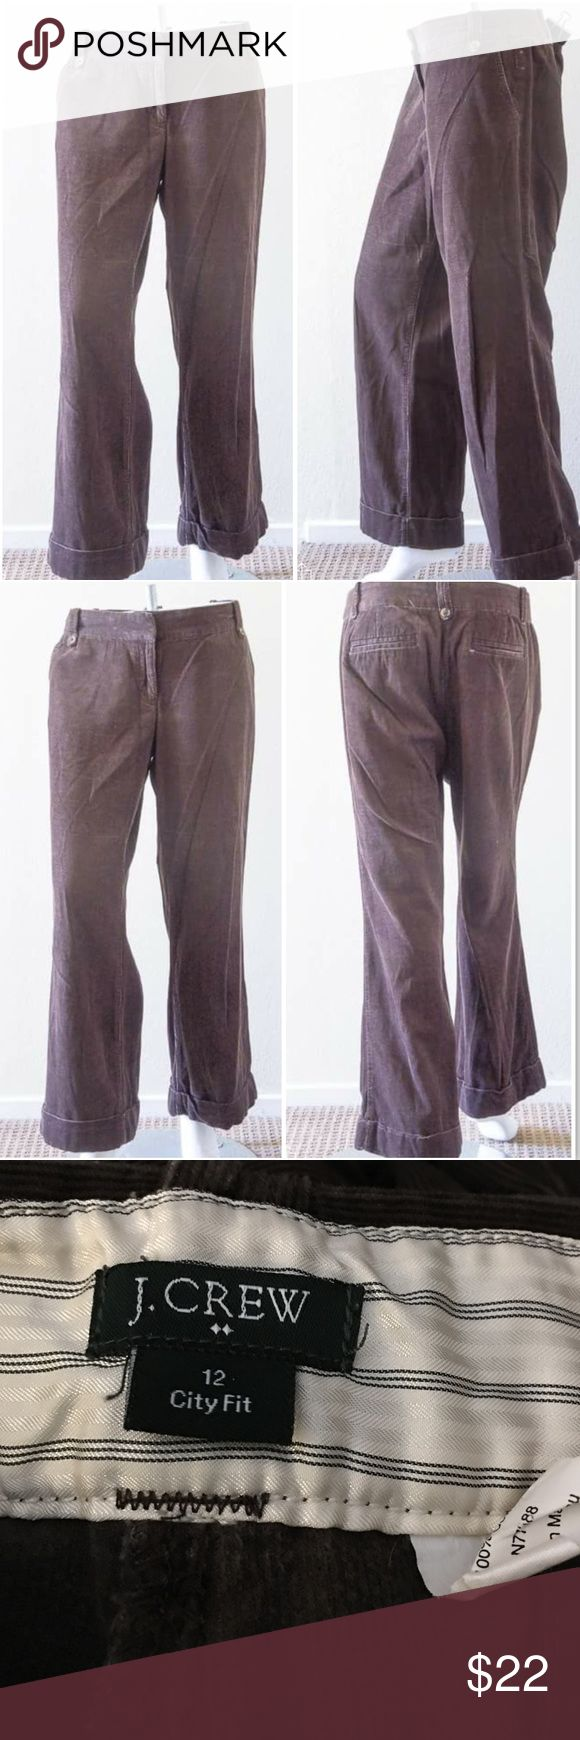 """J. Crew City Fit Luxe Cord Trouser Pre-owned in excellent condition. These classic wide-leg cords are made of 100% cotton. Inseam 30"""". Made in Macau. Machine wash cold. J. Crew Pants Wide Leg"""